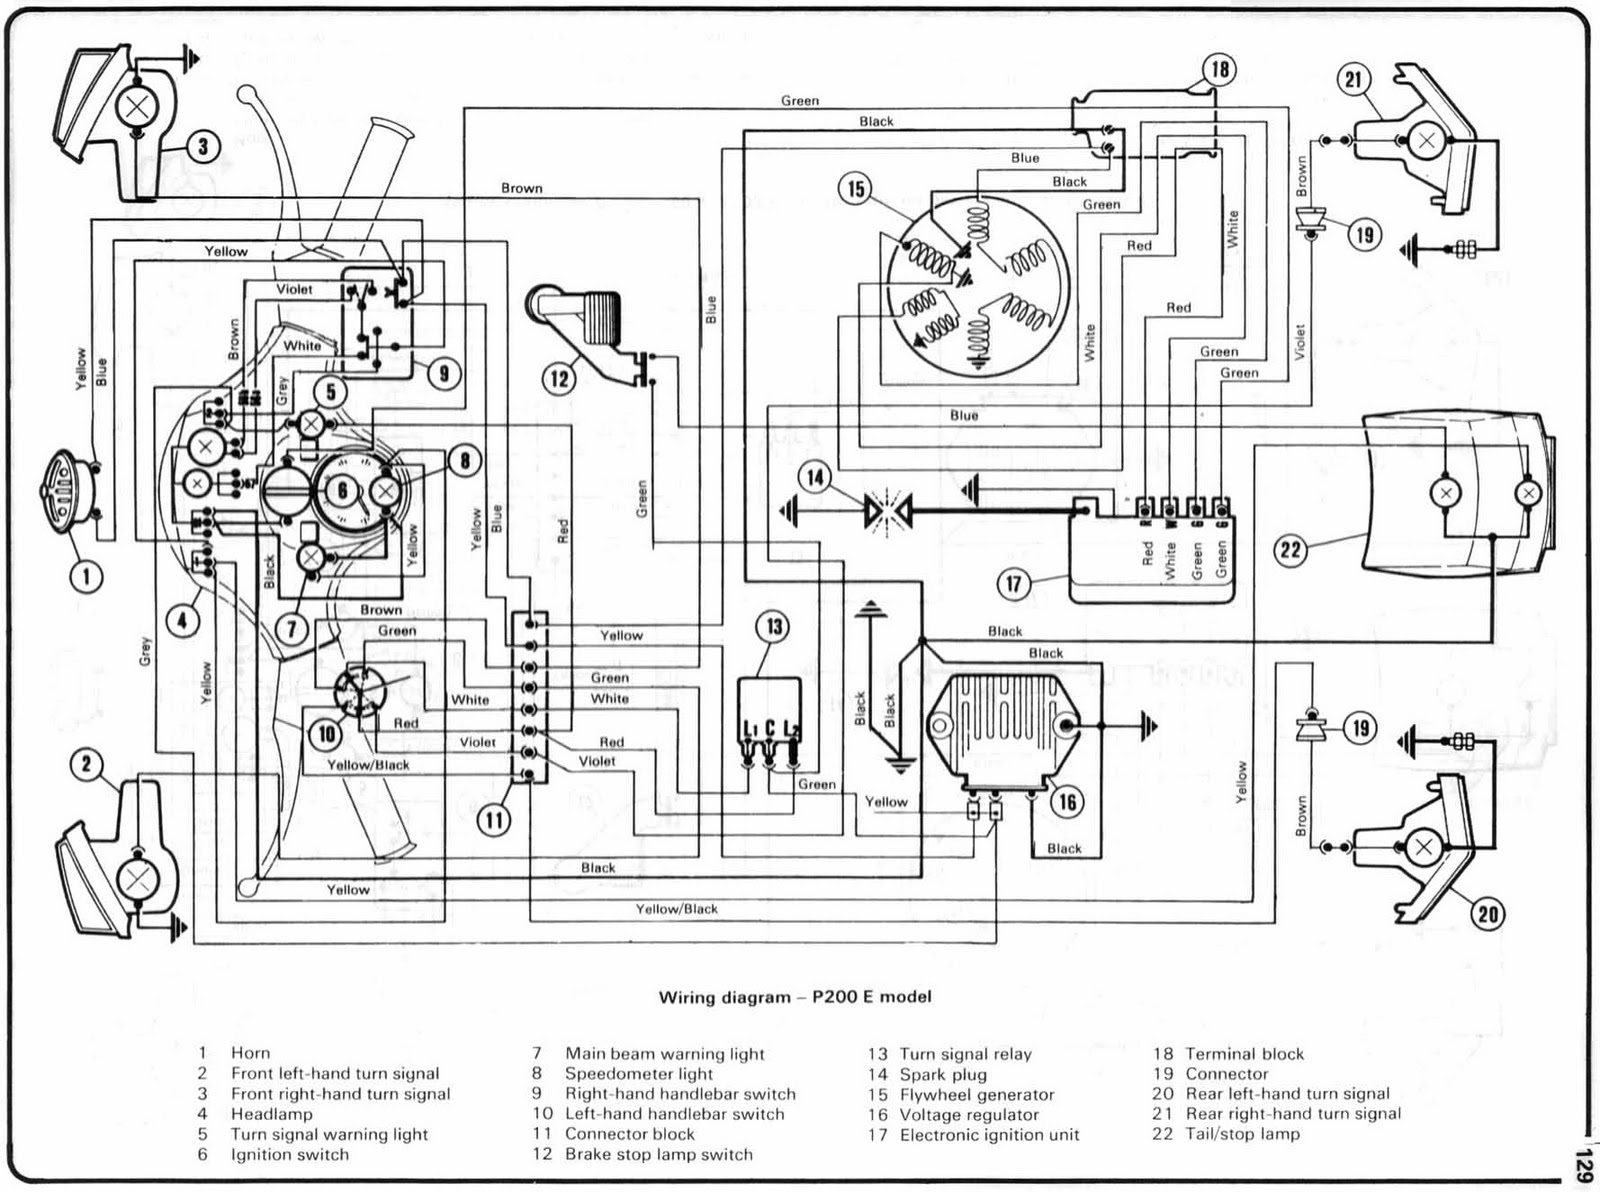 Vespa gt200 wiring diagram ignition basic guide wiring diagram wiring diagram vespa super free download wiring diagram xwiaw rh xwiaw us vespa light switch wiring cheapraybanclubmaster